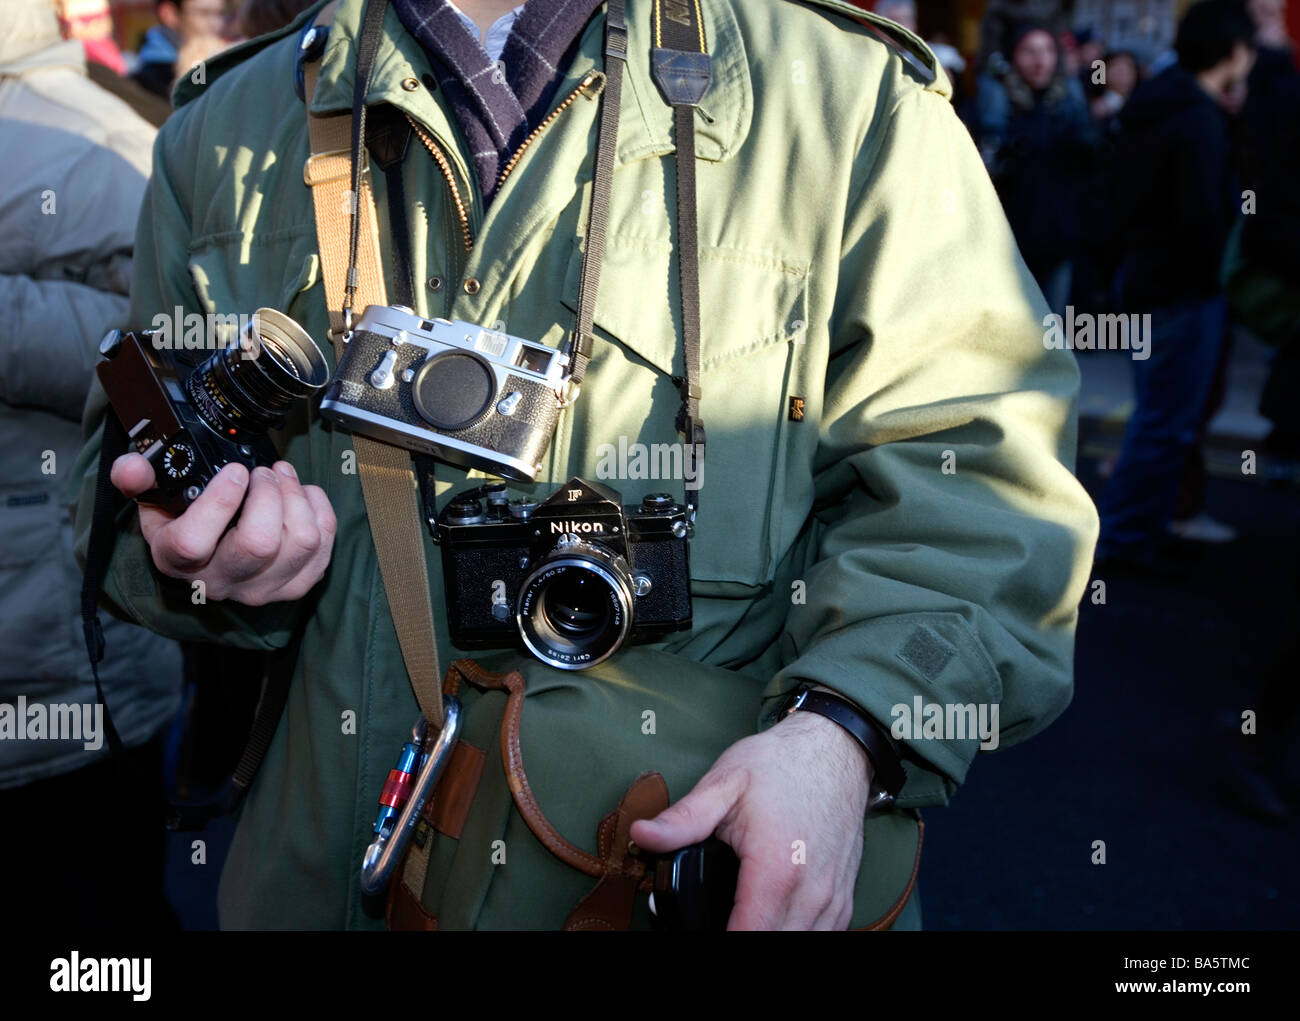 Classic cameras in use at Chinese New Year Celebrations, London. England. Europe Stock Photo